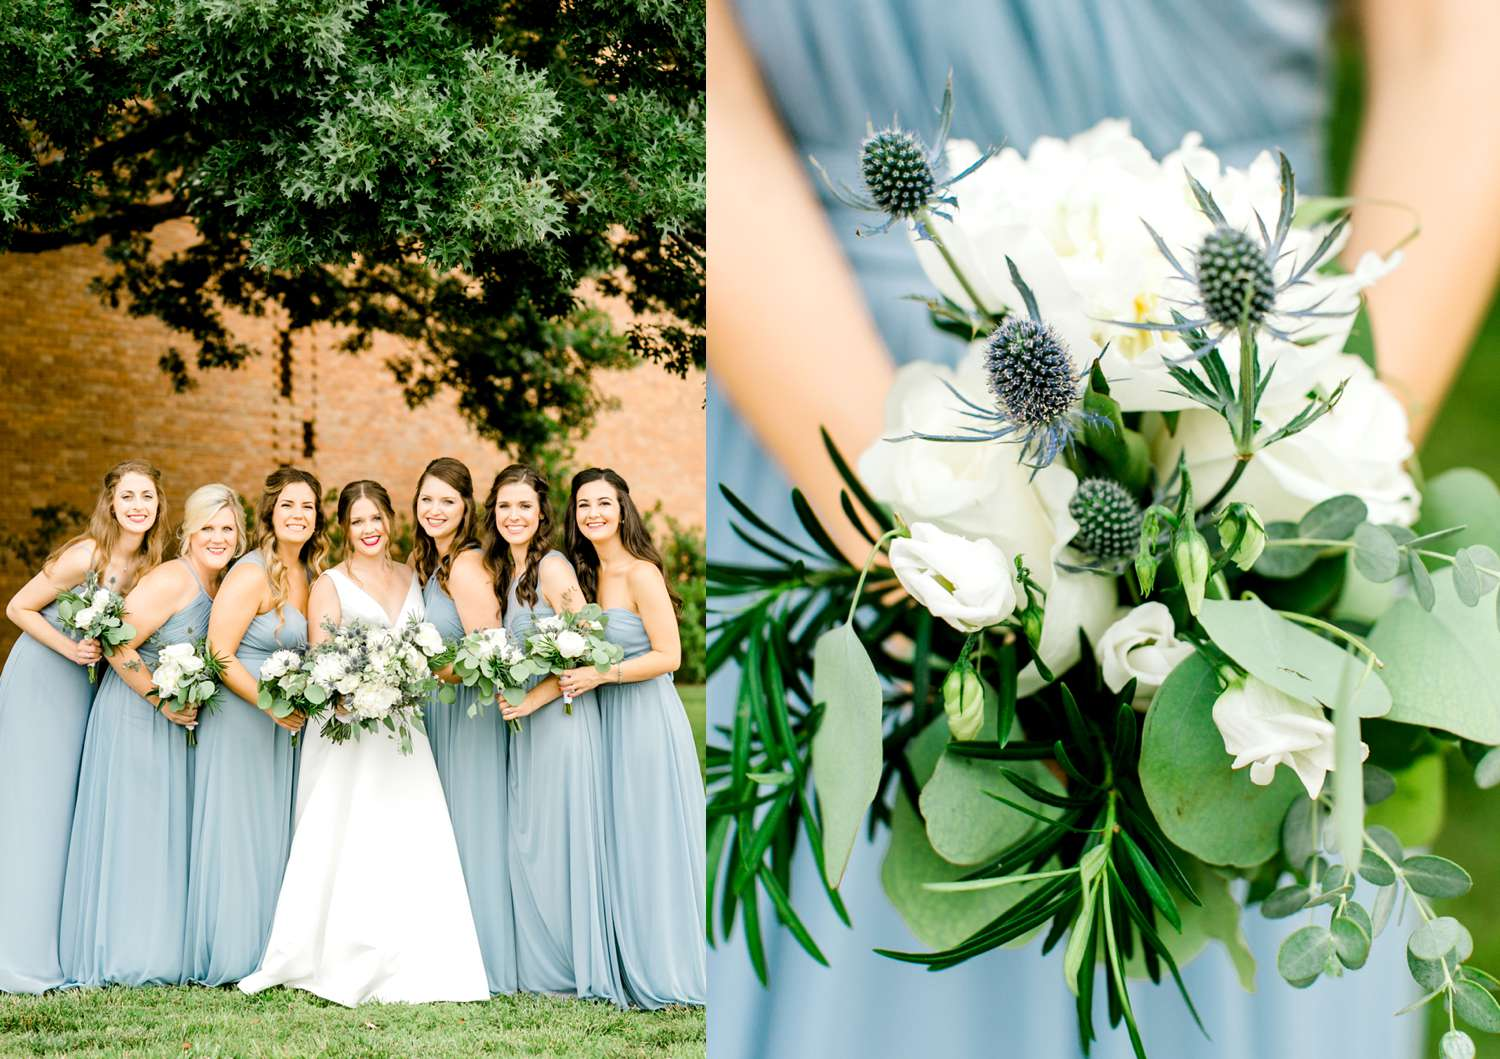 HANNAH+CRAIG+CHILDS+TEXAS+TECH+WEDDING+ALLEEJ+LUBBOCK+PHOTOGRAPHER_0023.jpg